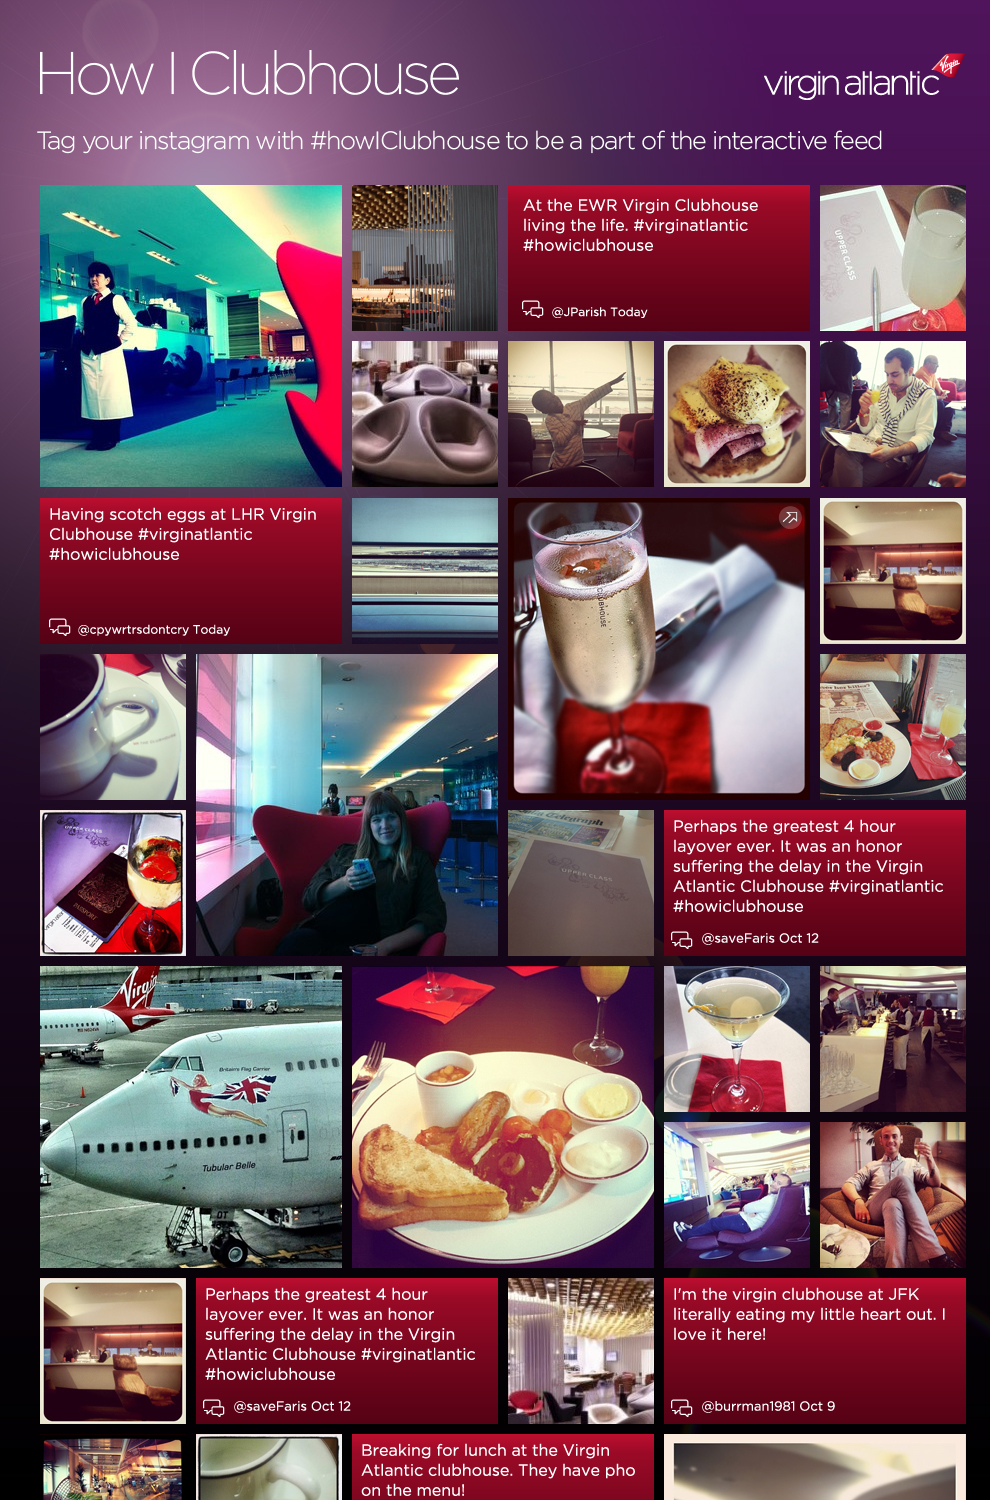 01_VirginAtlantic_Instagram_Land.jpg